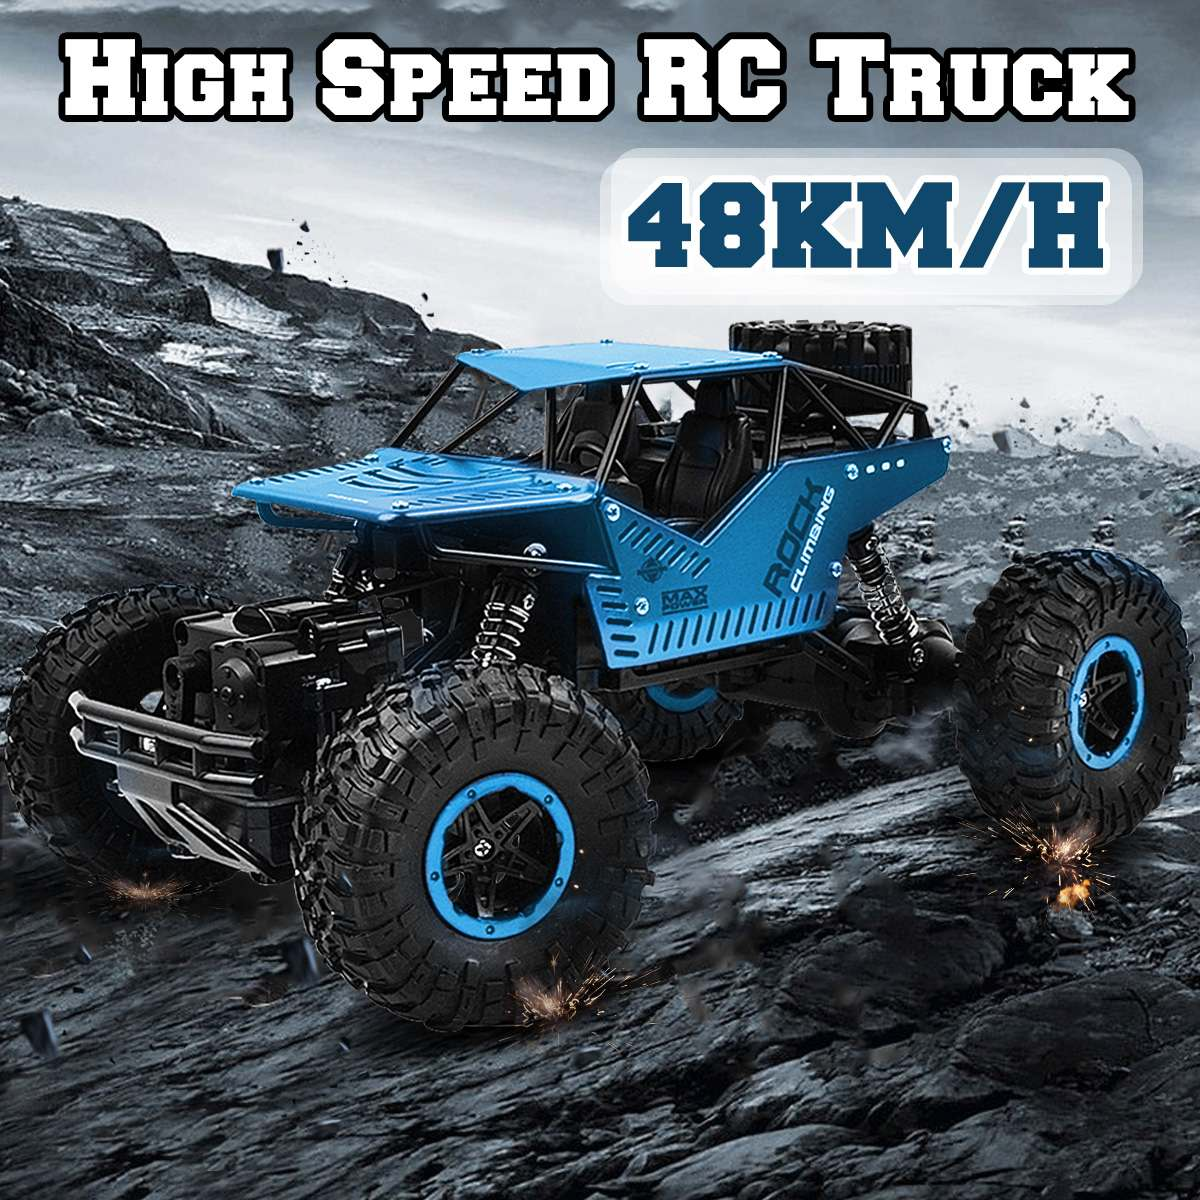 1:16 48KM/H Climbing RC Truck 4WD Off-Road Vehicle 2.4GHz Remote Control Car Toy1:16 48KM/H Climbing RC Truck 4WD Off-Road Vehicle 2.4GHz Remote Control Car Toy